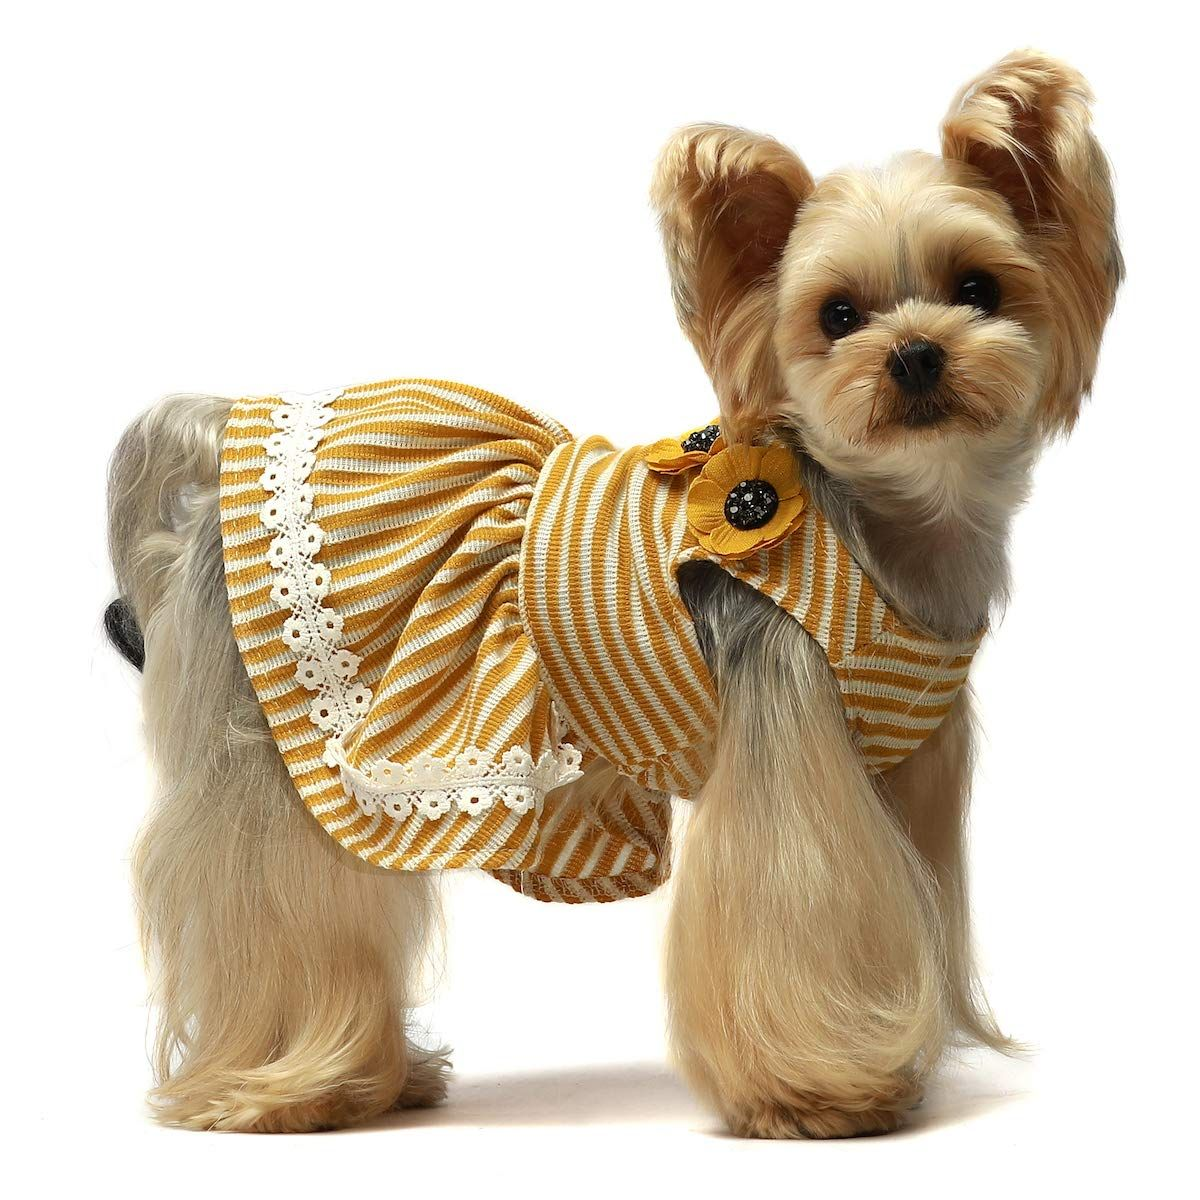 Fitwarm Flowers Pet Clothes For Dog Dresses Vest Shirts Sundress Mustard Yellow Learn More By Visiting The Image Pet Clothes Dog Clothes Dog Harness Dress [ 1200 x 1200 Pixel ]